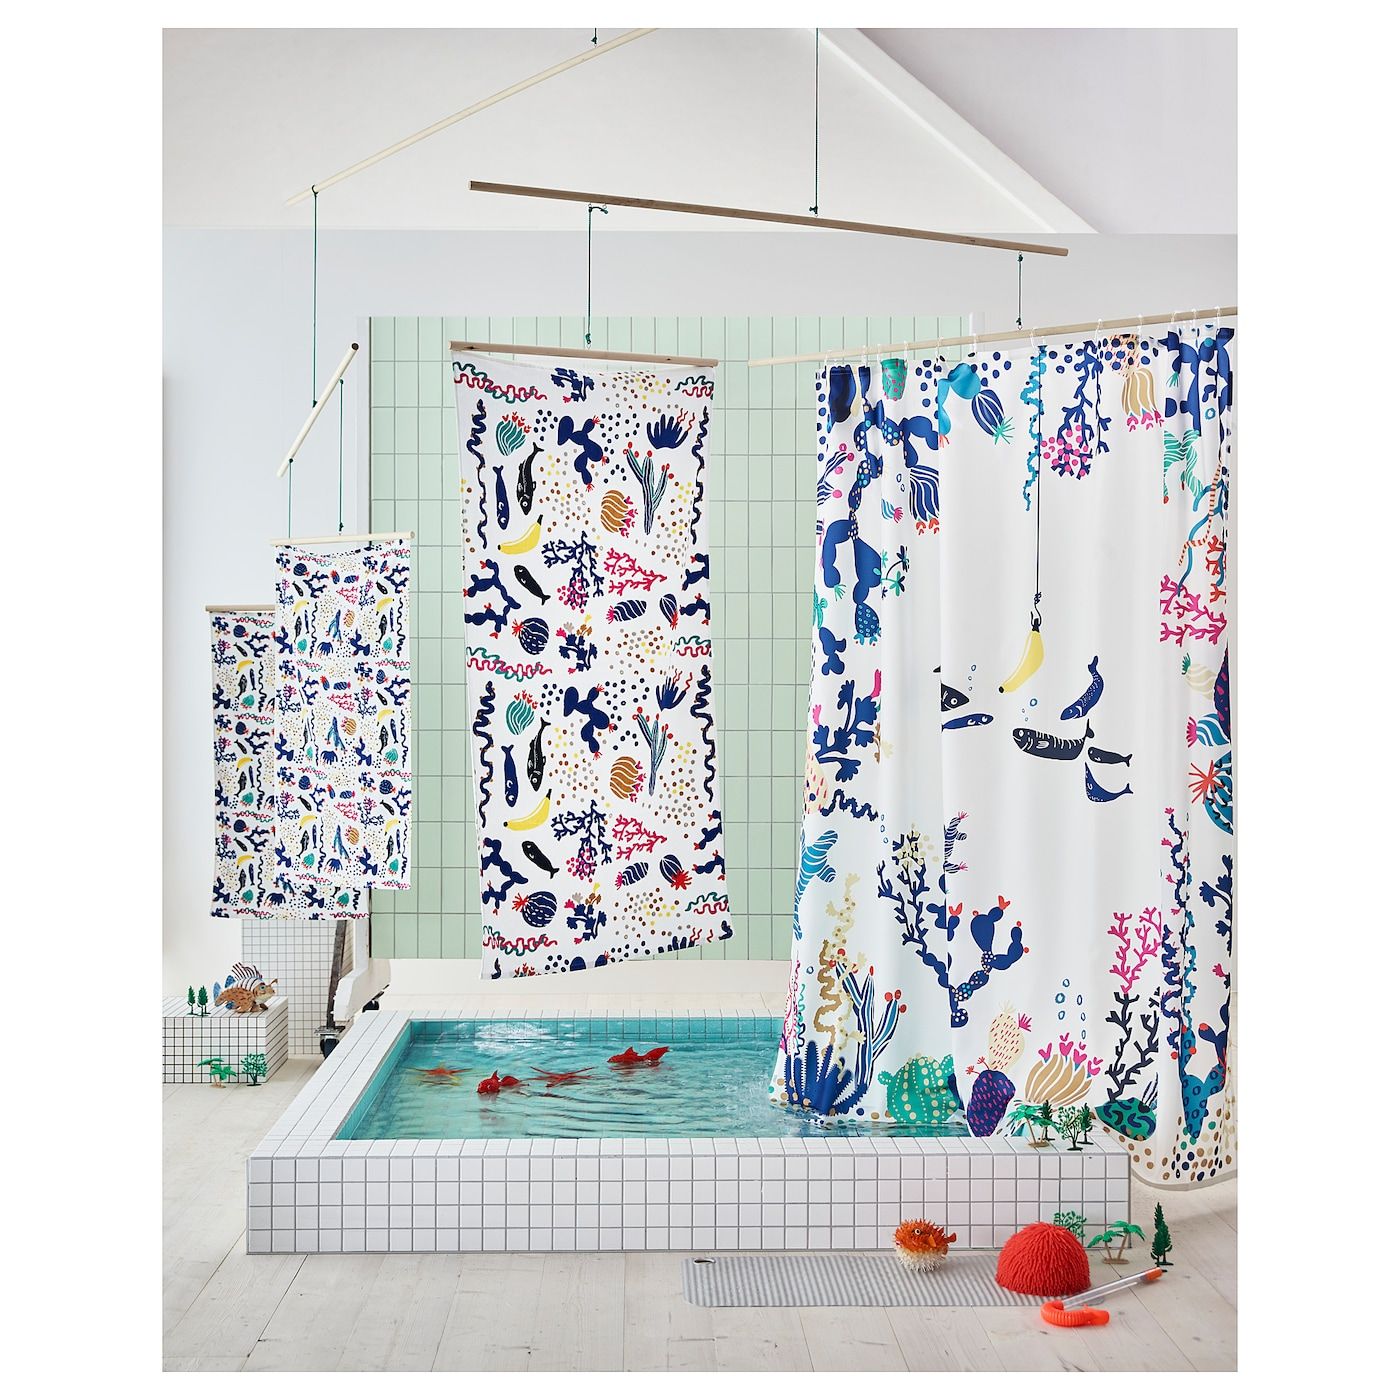 IKEA LASJÖN shower curtain Densely-woven polyester fabric with water-repellent coating.